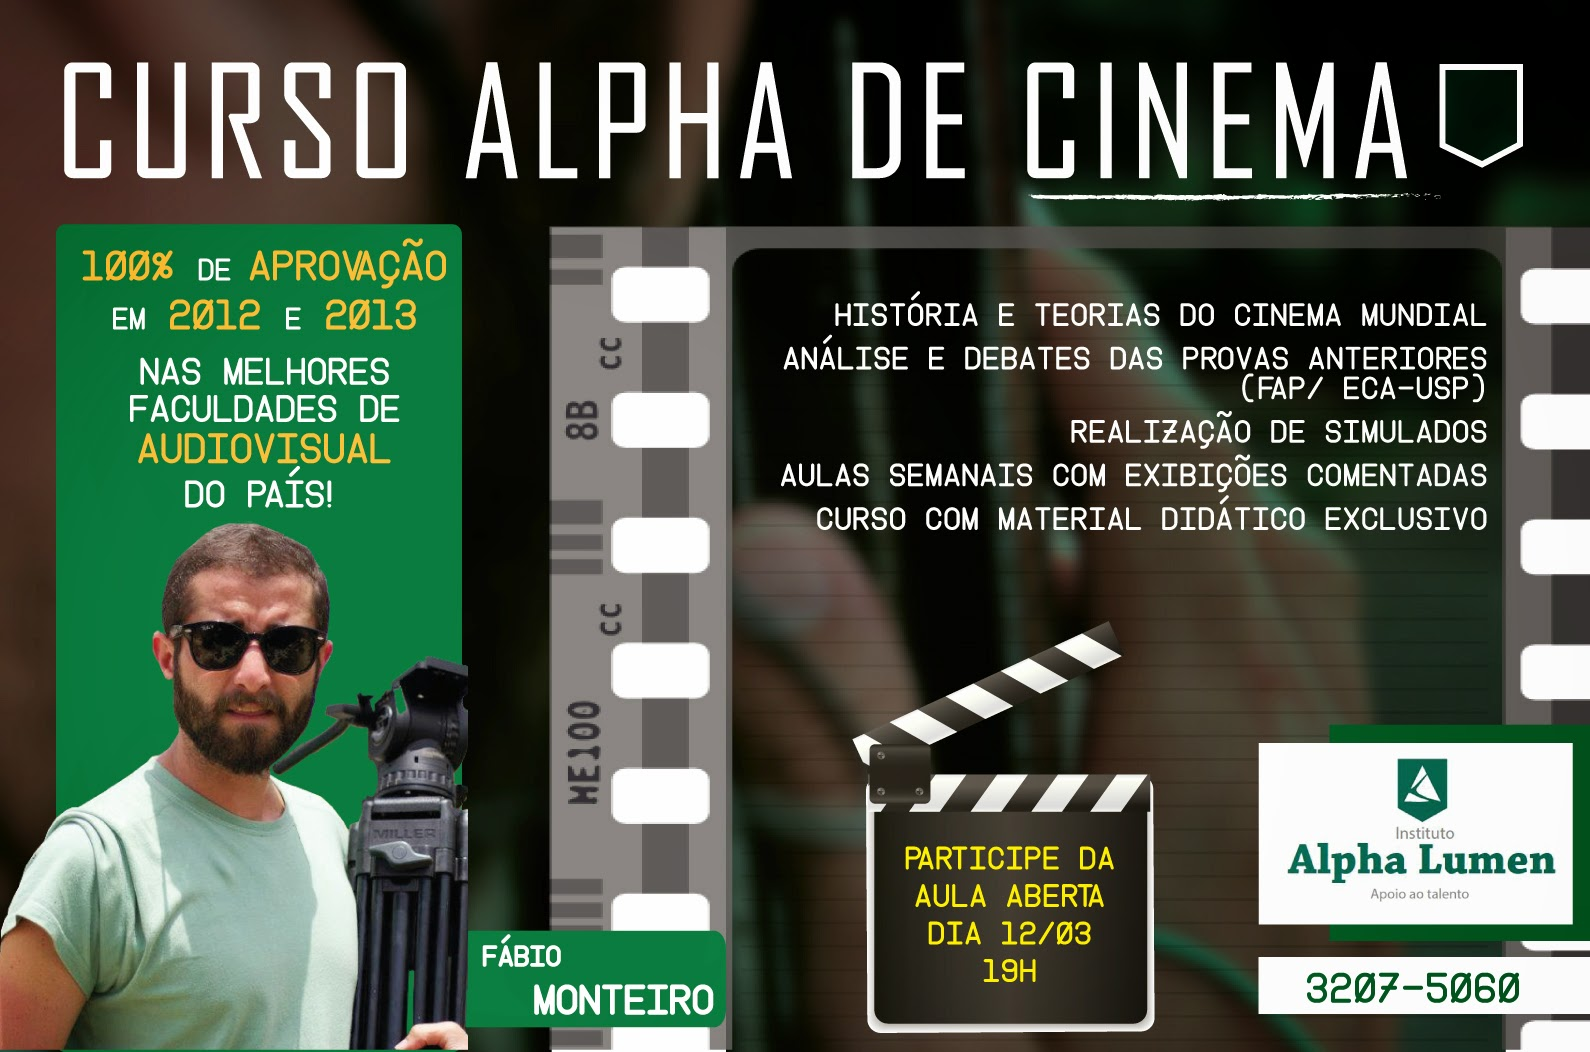 Curso Alpha de Cinema